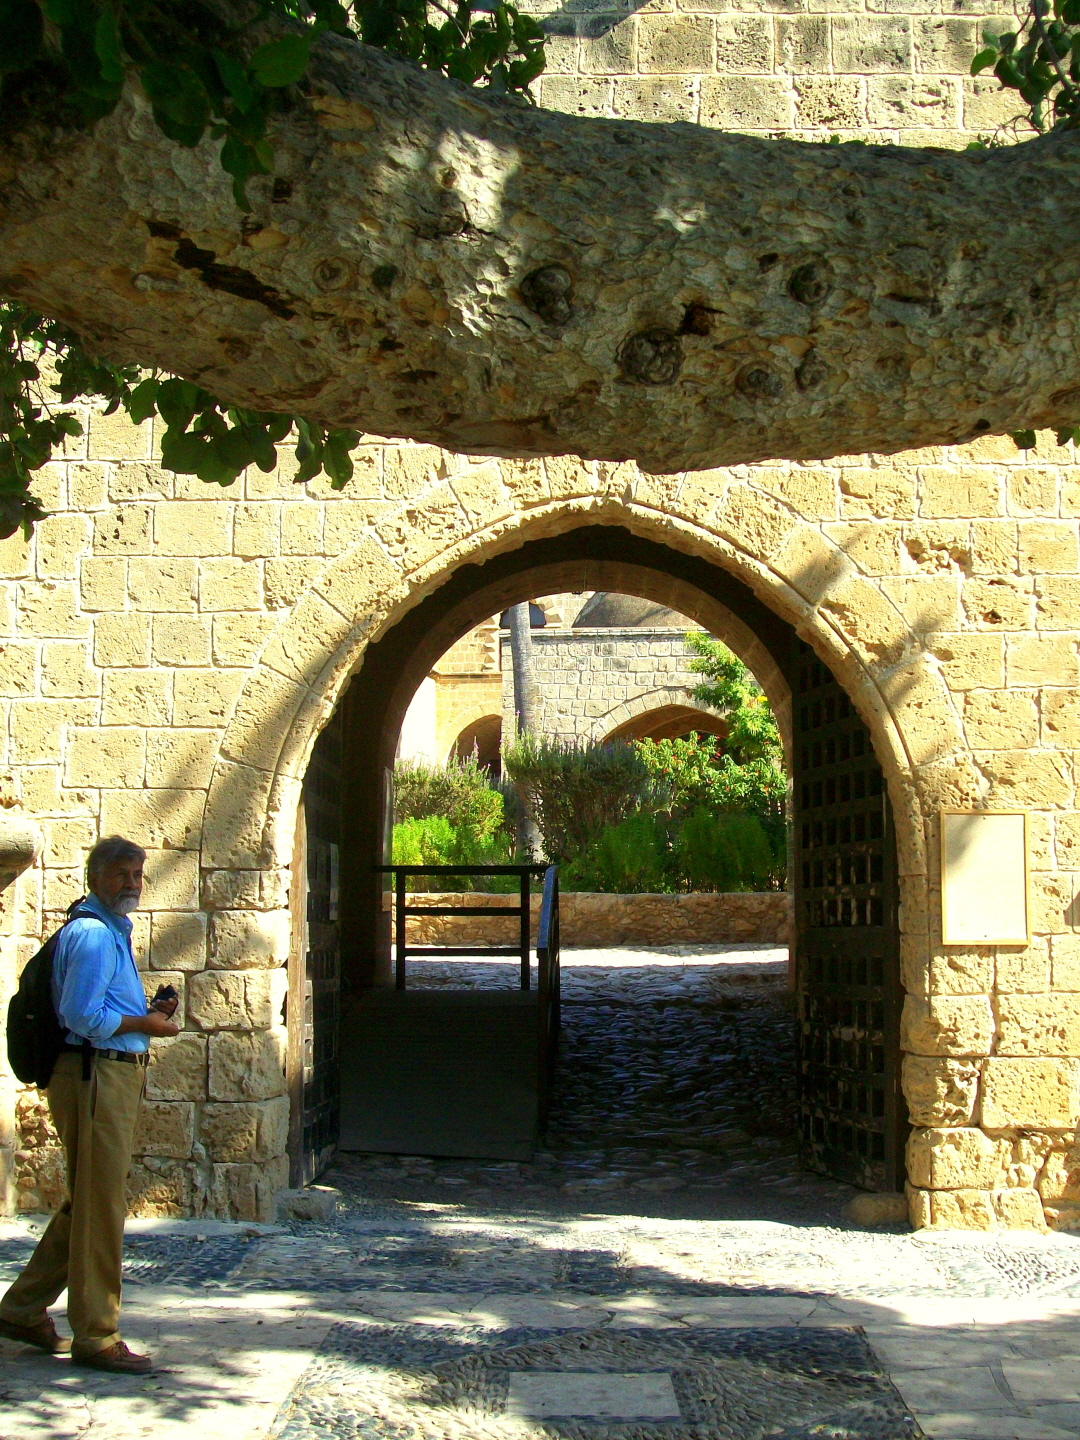 Ajata at Entrance to Ayia Napa Monastery (10th c.) - Ayia Napa, Cyprus